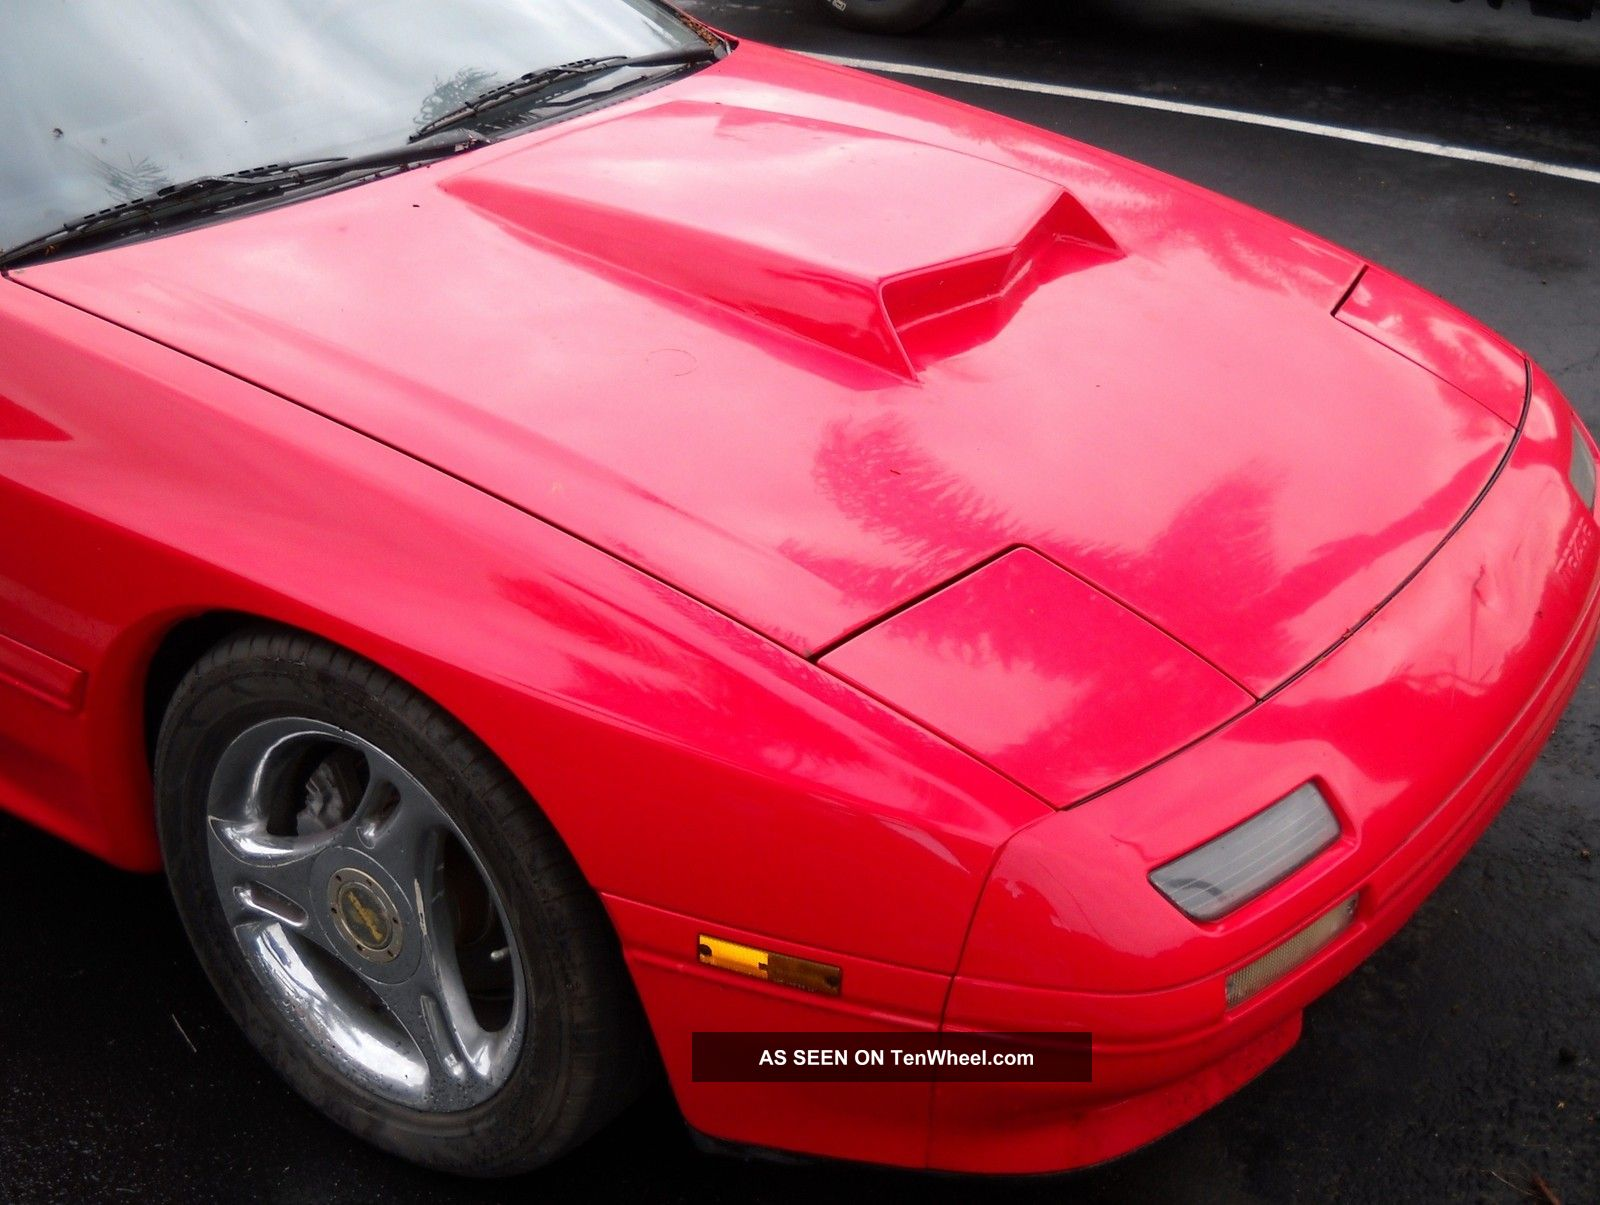 1990 Mazda Rx7 Convertible 350 Chevy Powered RX-7 photo